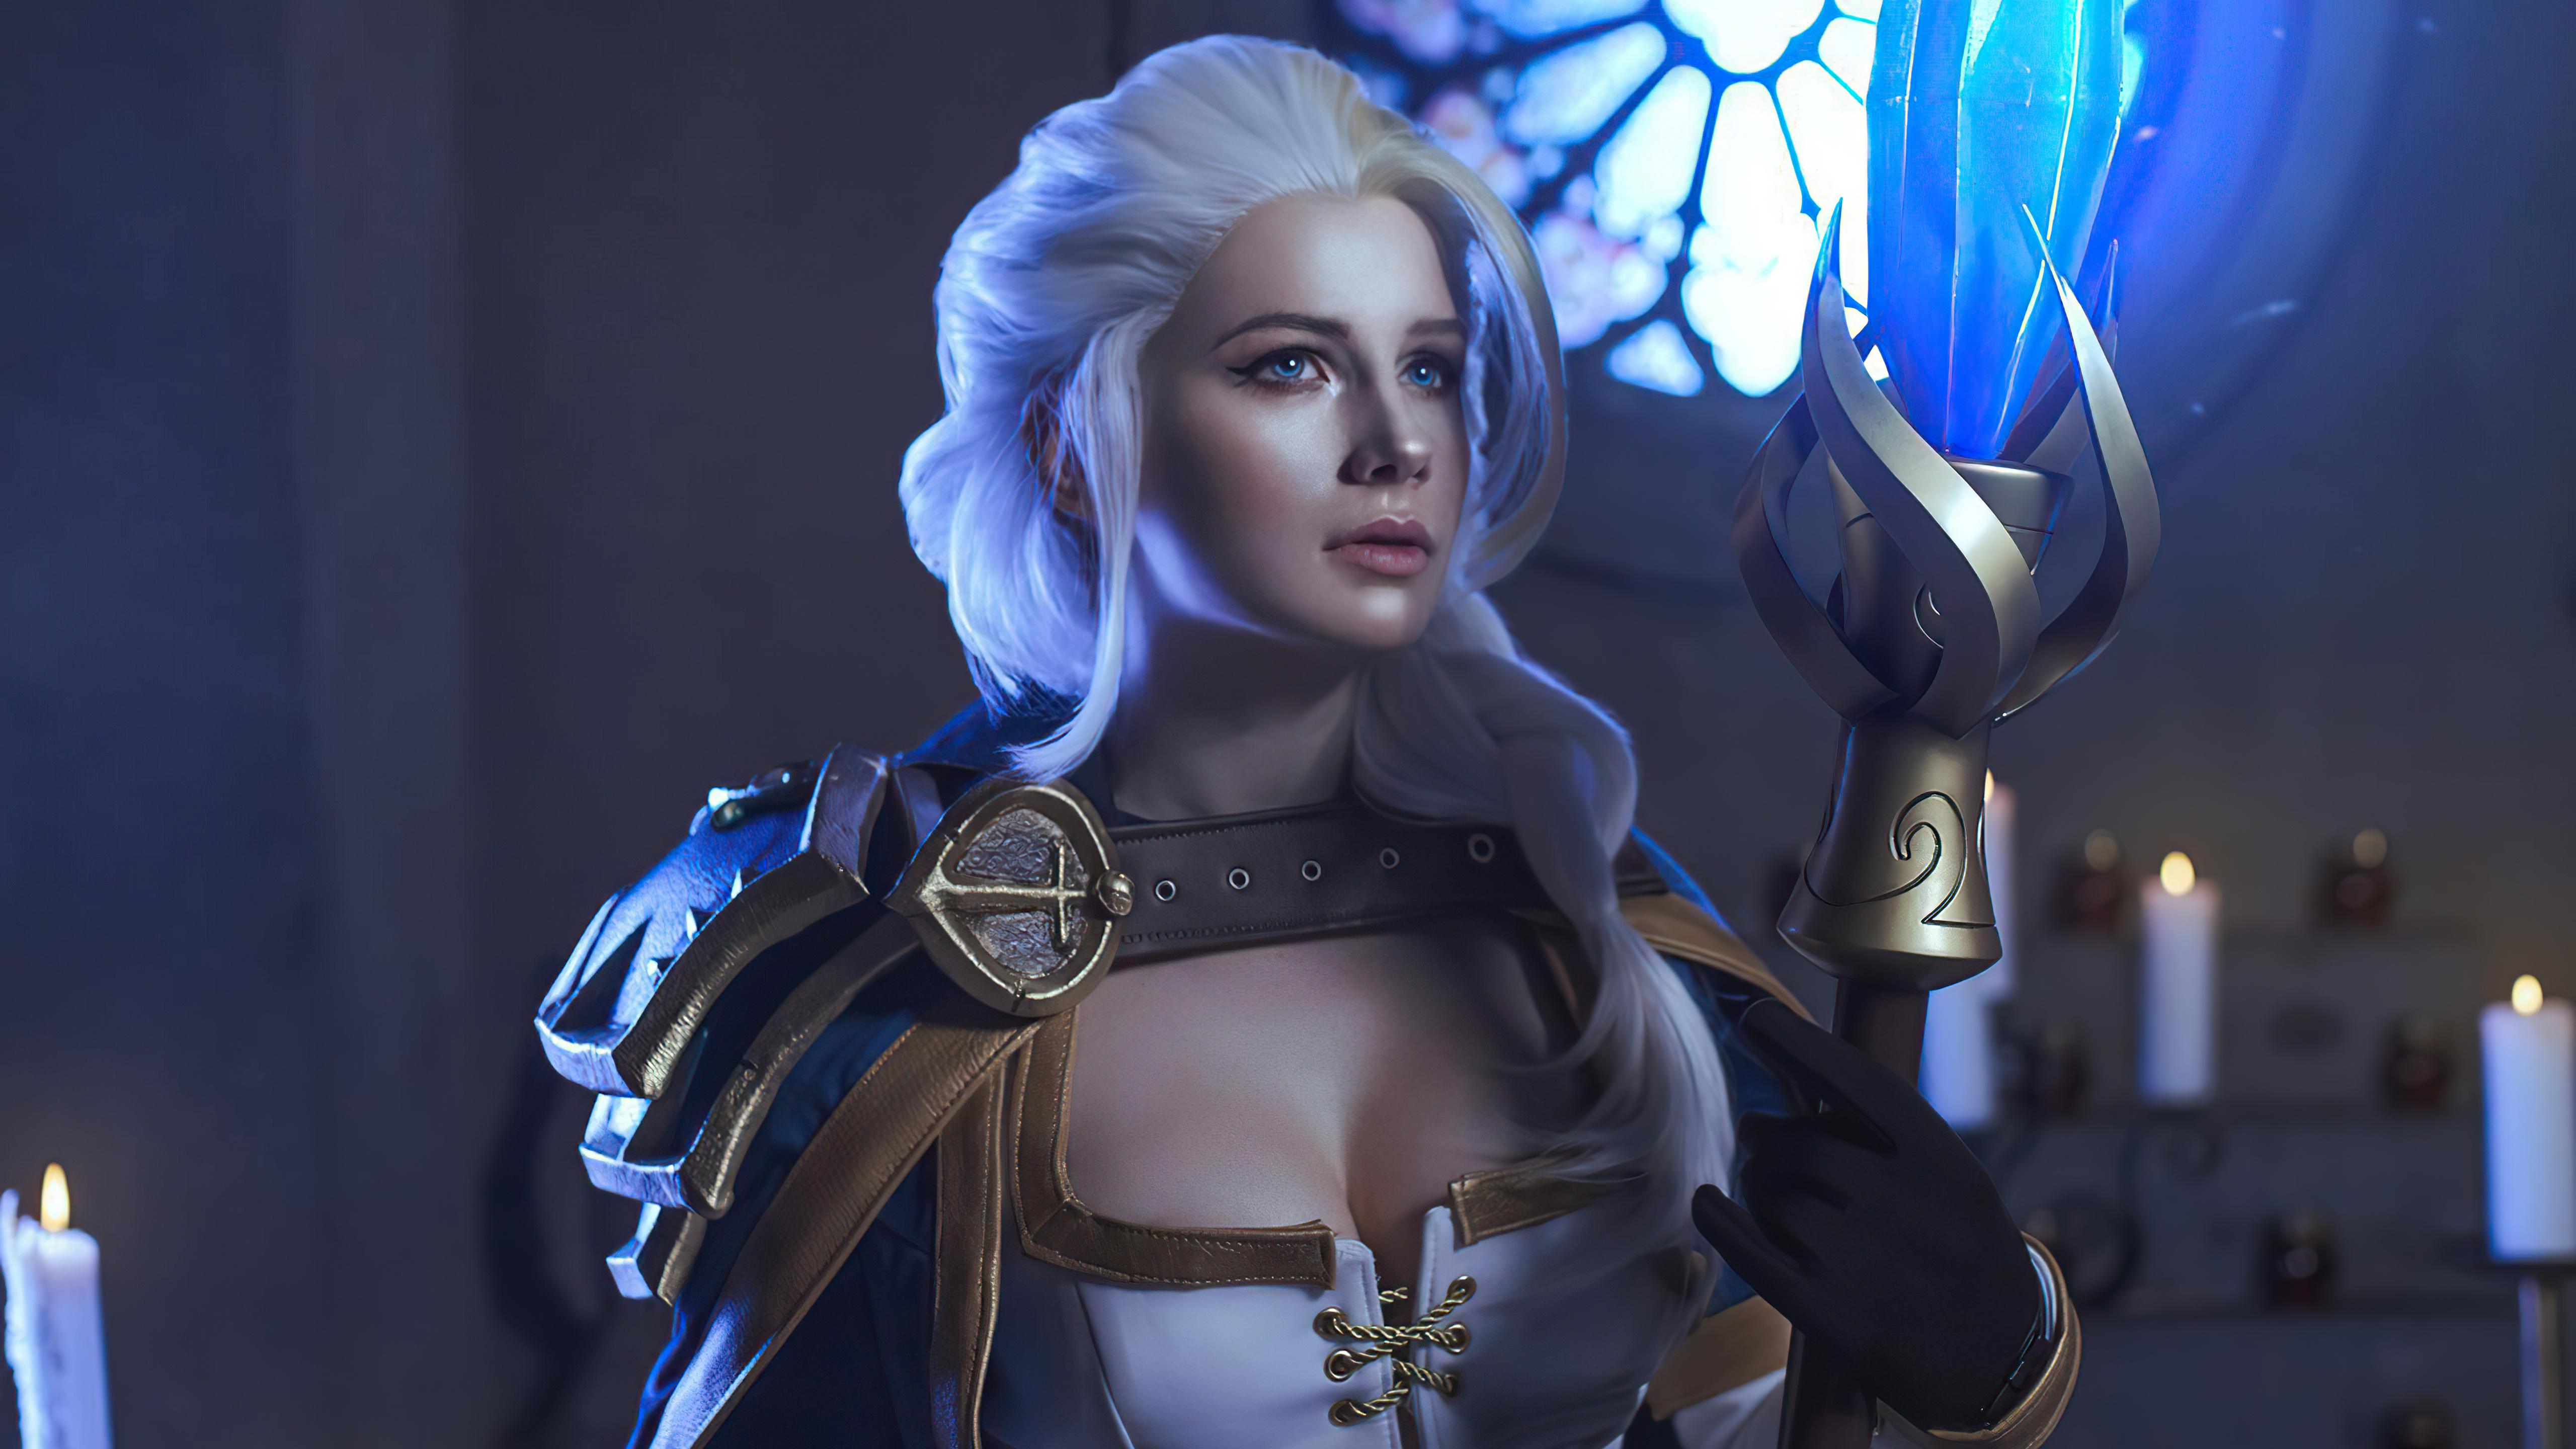 Wallpaper Jaina Proudmoore from The world of warcraft